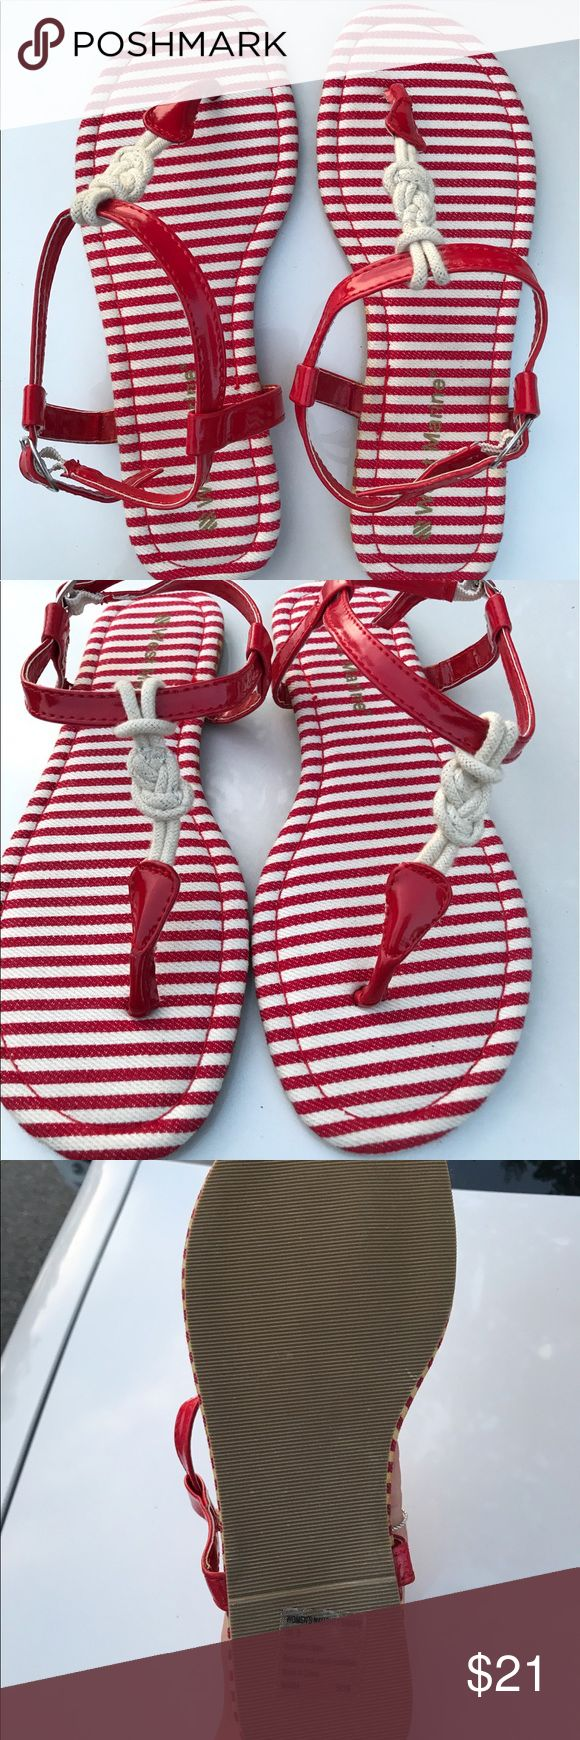 "West Marine Stripe Red/White Sandals sz 8 West Marine ""naughty"" sandal. red and white stripe. Size 8. Never worn. West Marine Shoes Sandals"